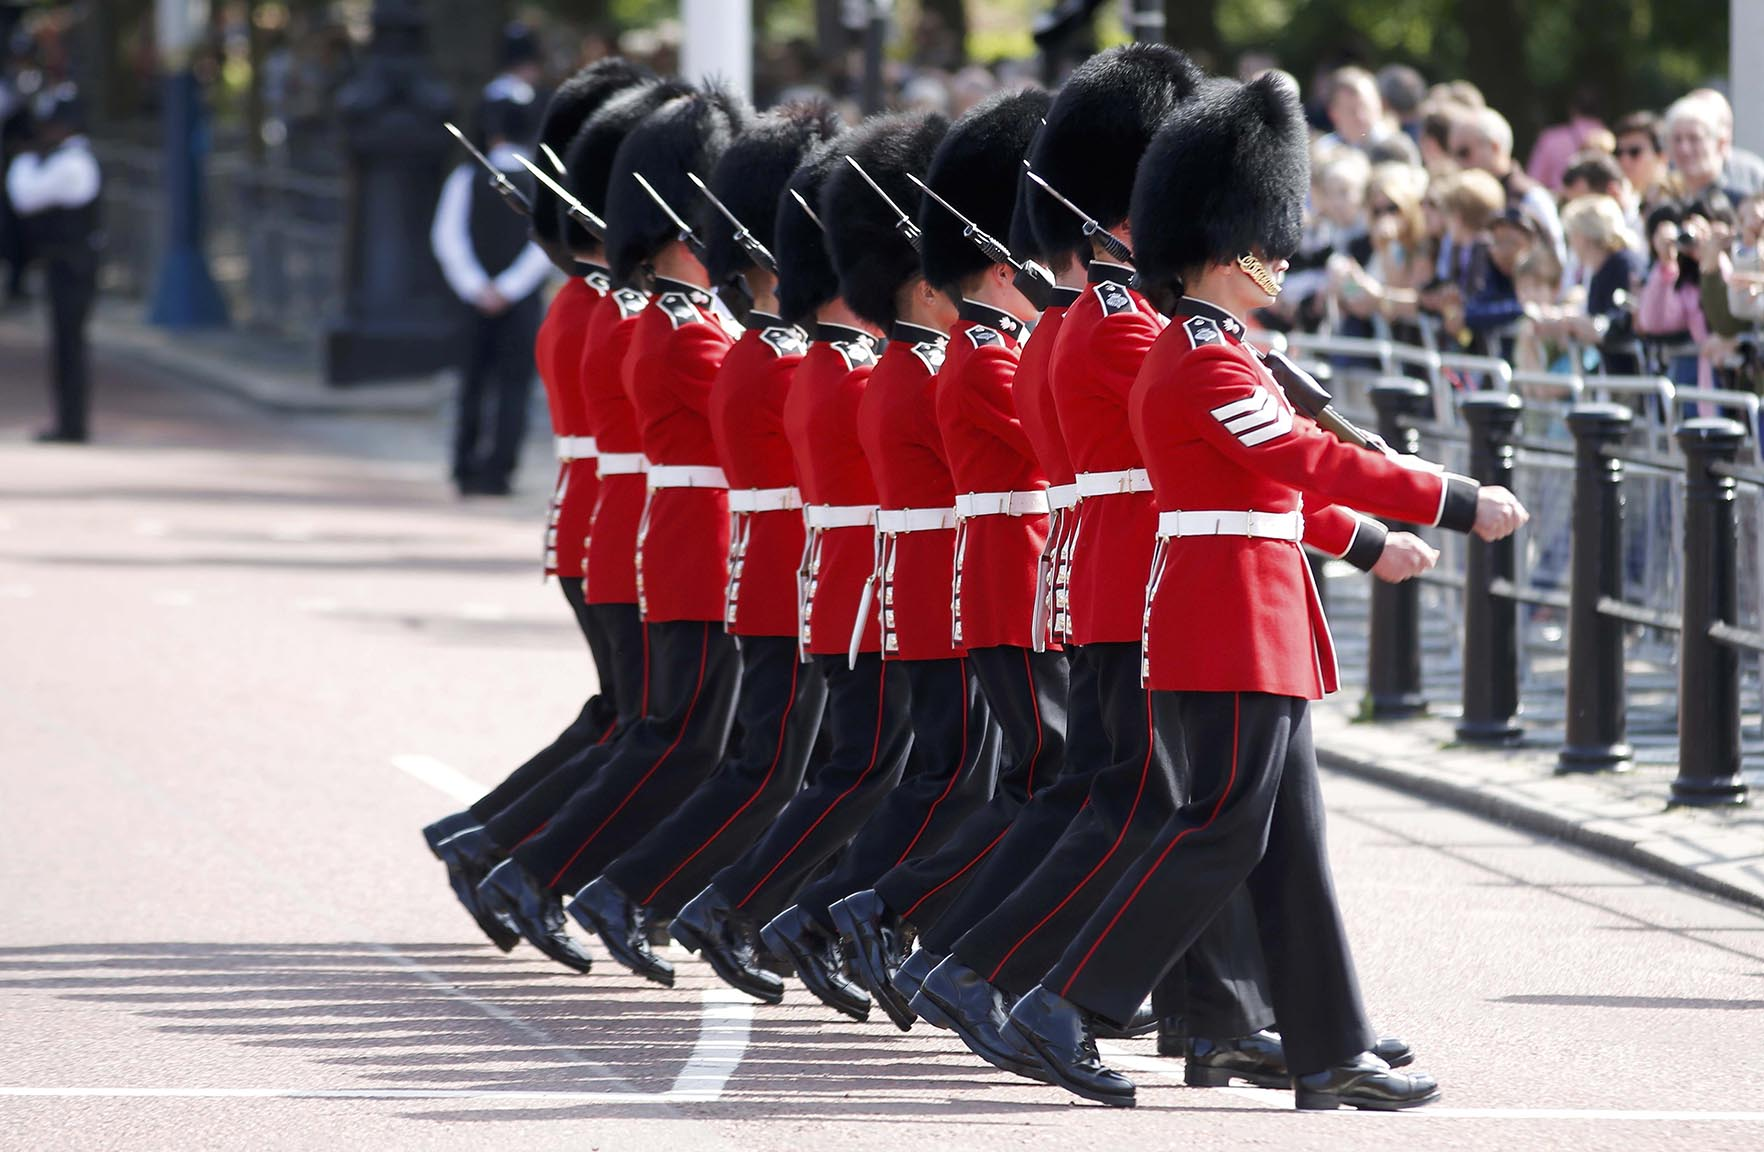 Guardsmen march past Buckingham Palace during the State Opening of Parliament in central Londo